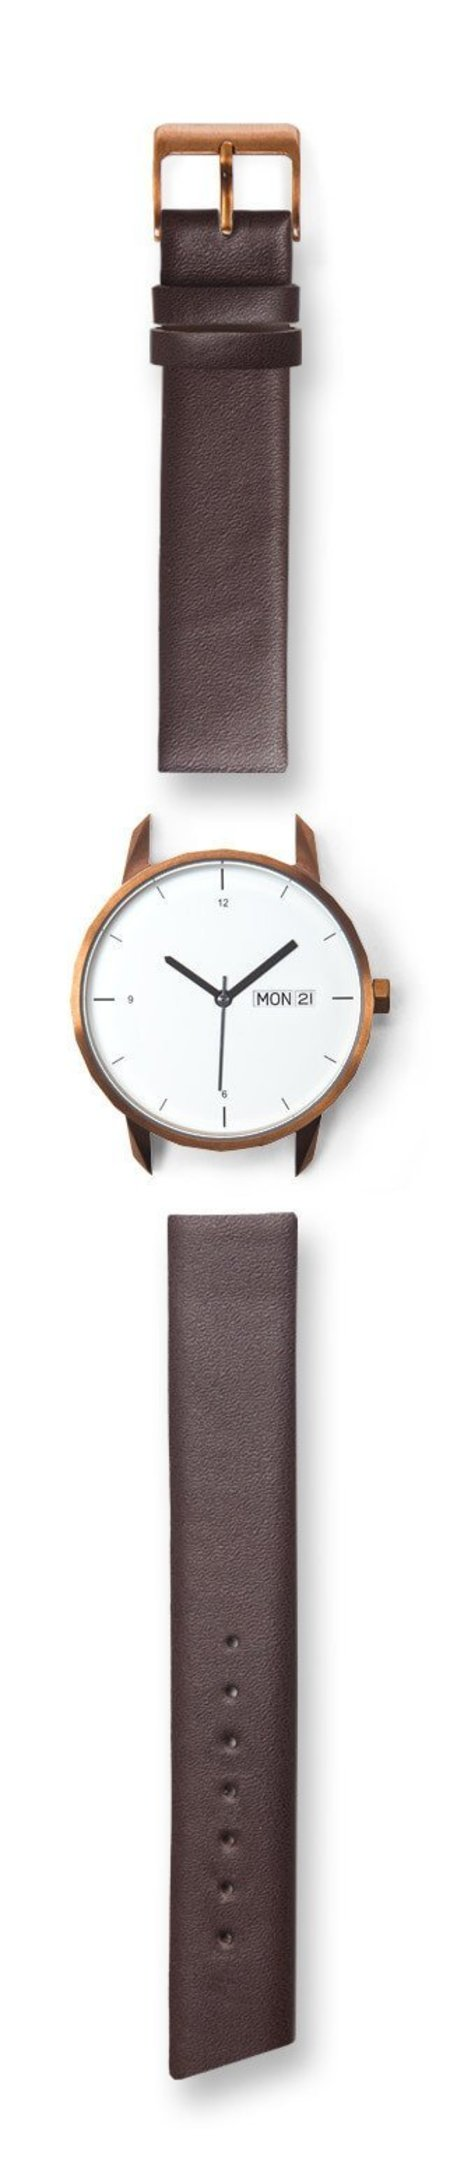 Unisex Tinker Watches 38mm Copper Watch Brown Italian Leather Strap